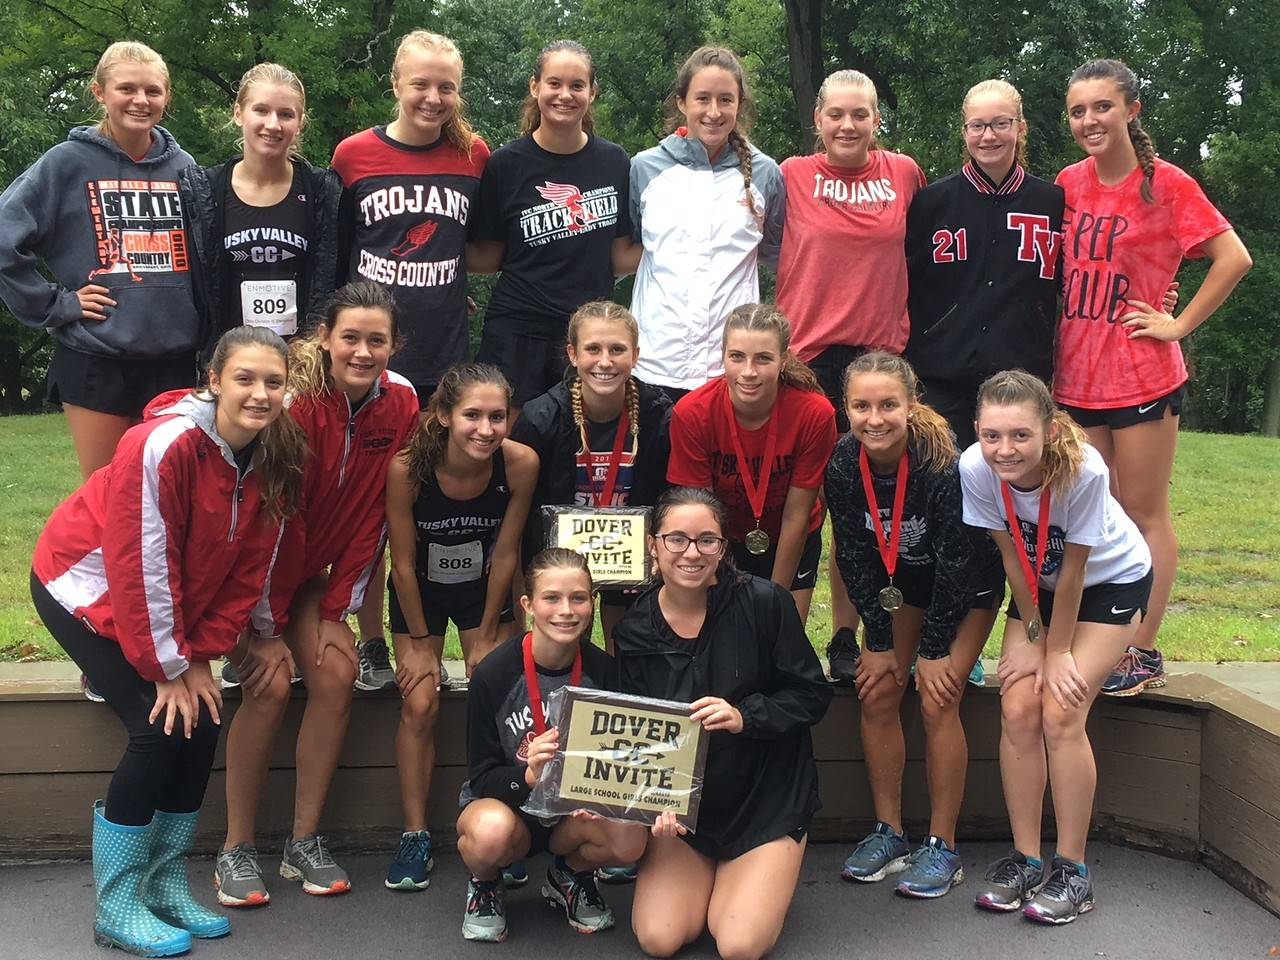 Girls Team takes 1st at Dover Invite